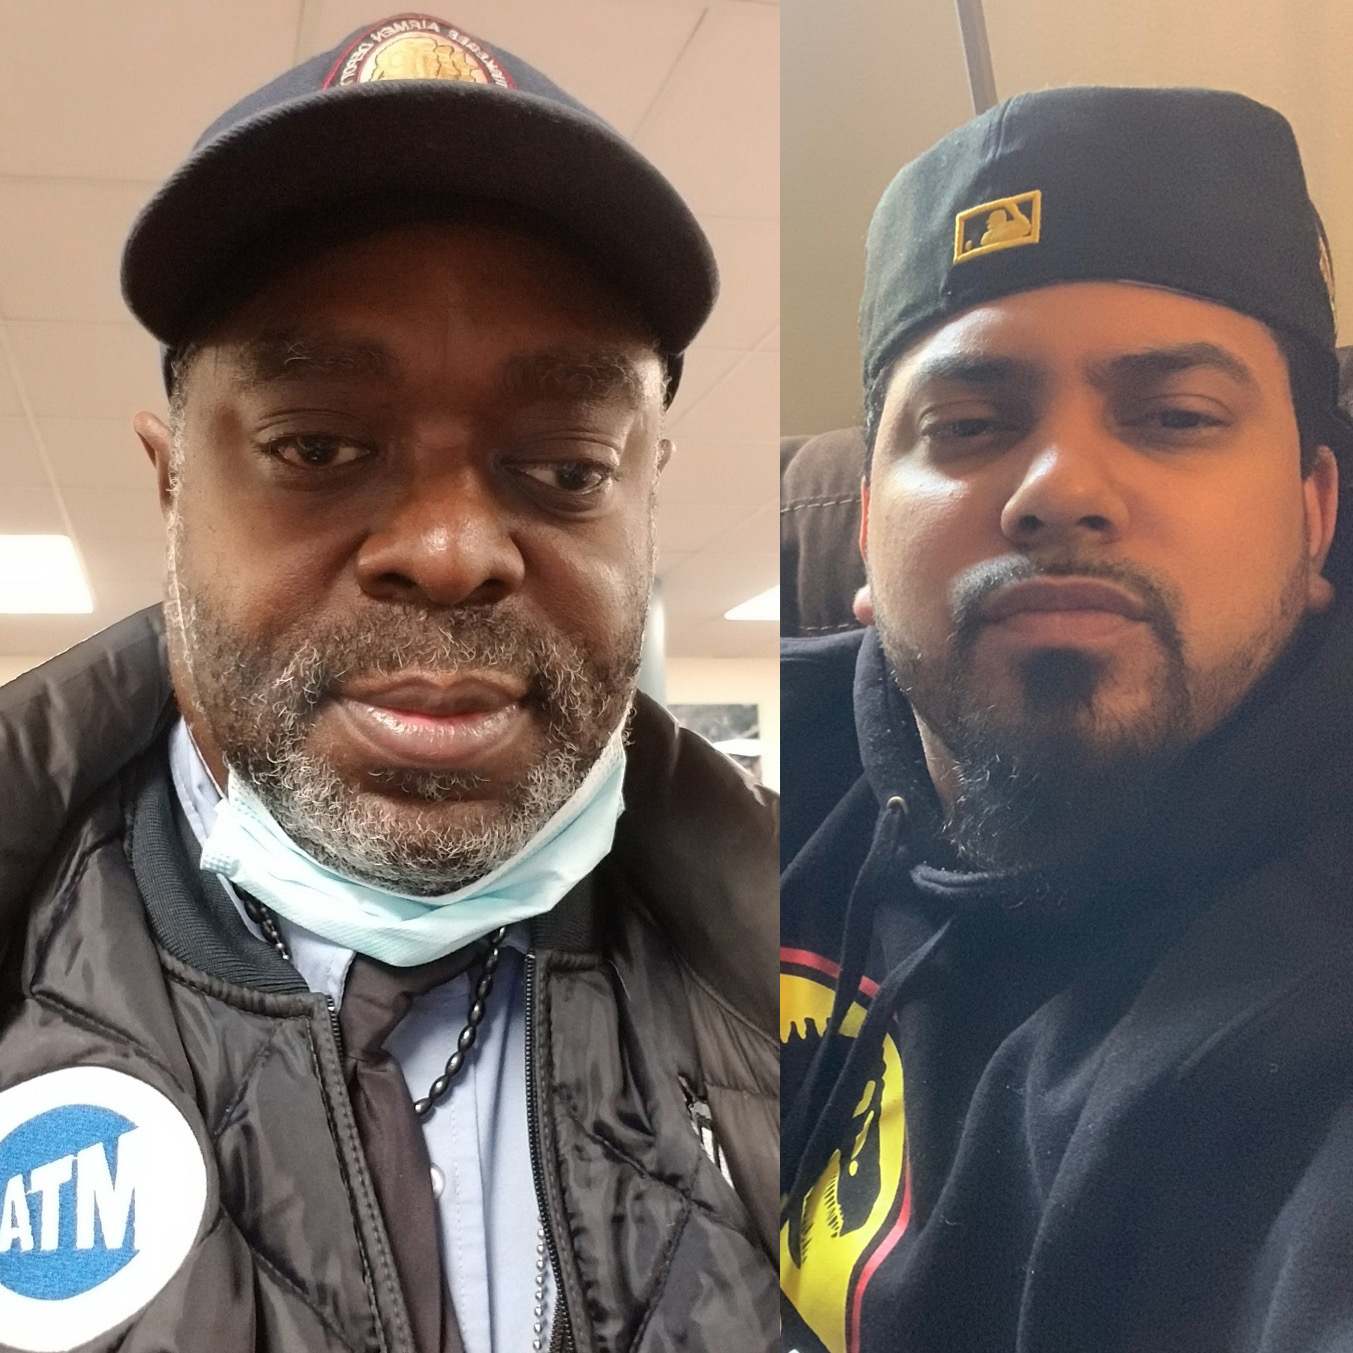 Caption: New York City MTA bus operators Tyrone Hampton (left) and Frank de Jesus spoke last week about how the coronavirus pandemic has affected their work. They talked during a remote StoryCorps conversation., Credit: Tyrone Hampton and Frank de Jesus.